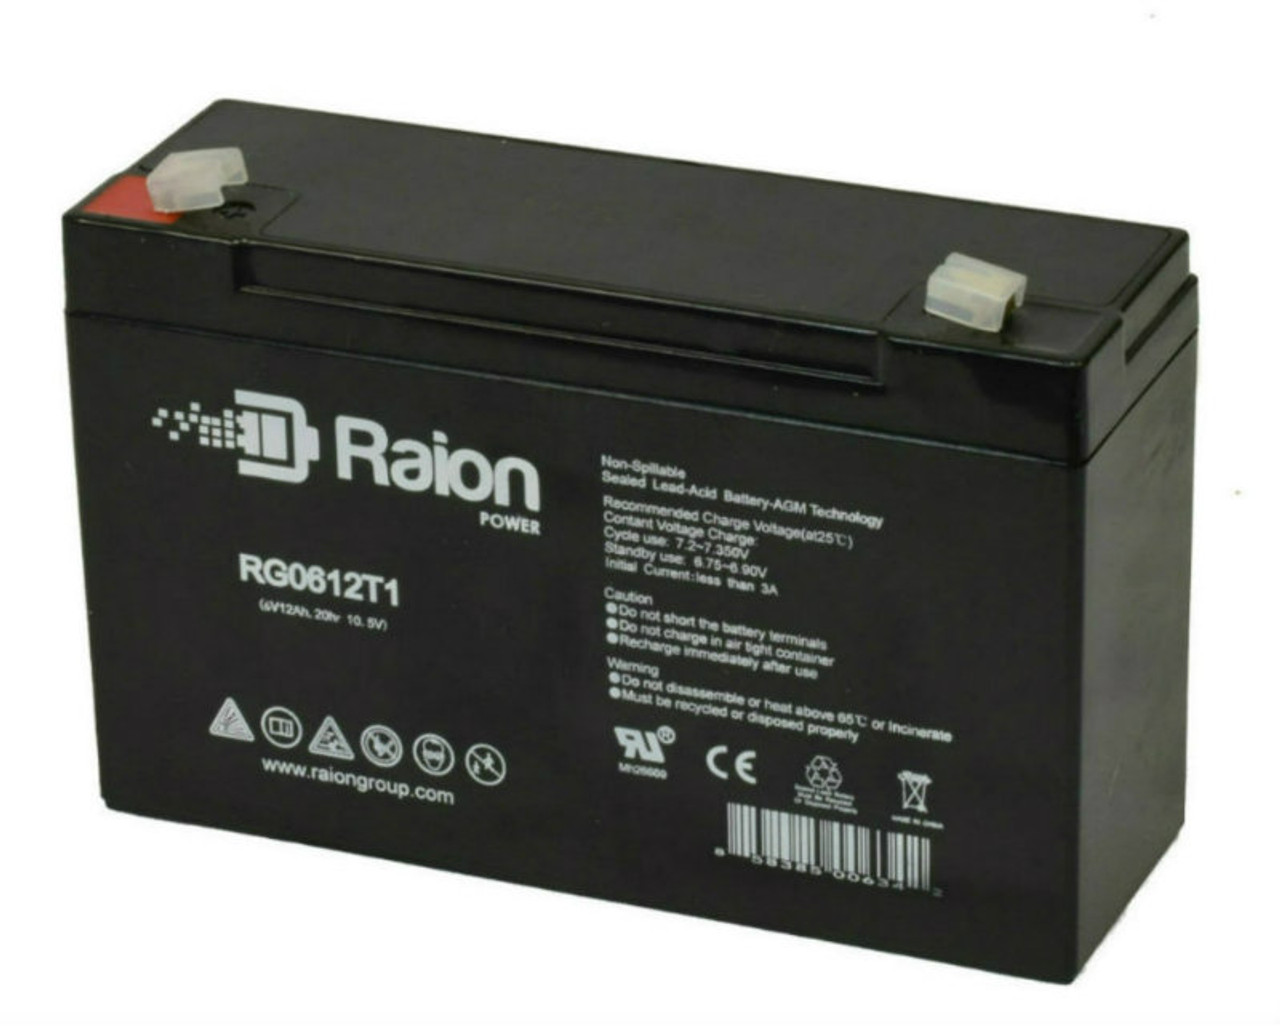 Raion Power RG06120T1 Replacement Battery Pack for Teledyne H2RQ12S7 emergency light